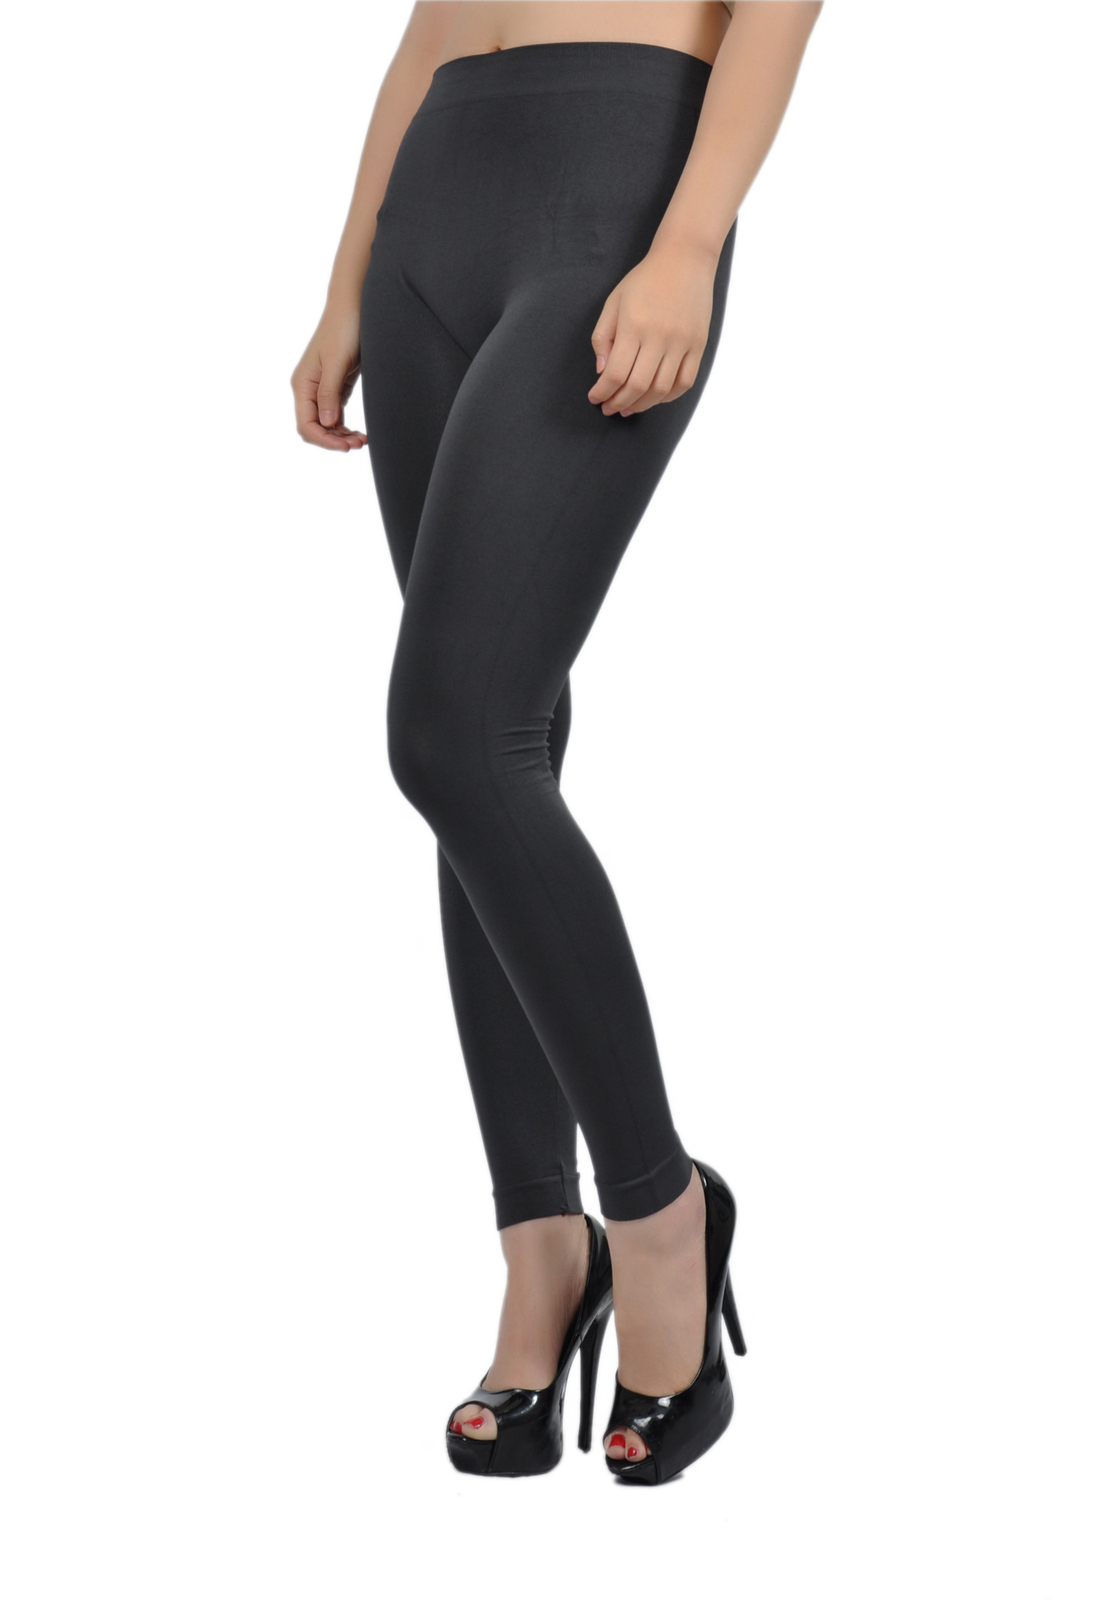 Comfy Seamless Full Leggings, One Size Regular Fist